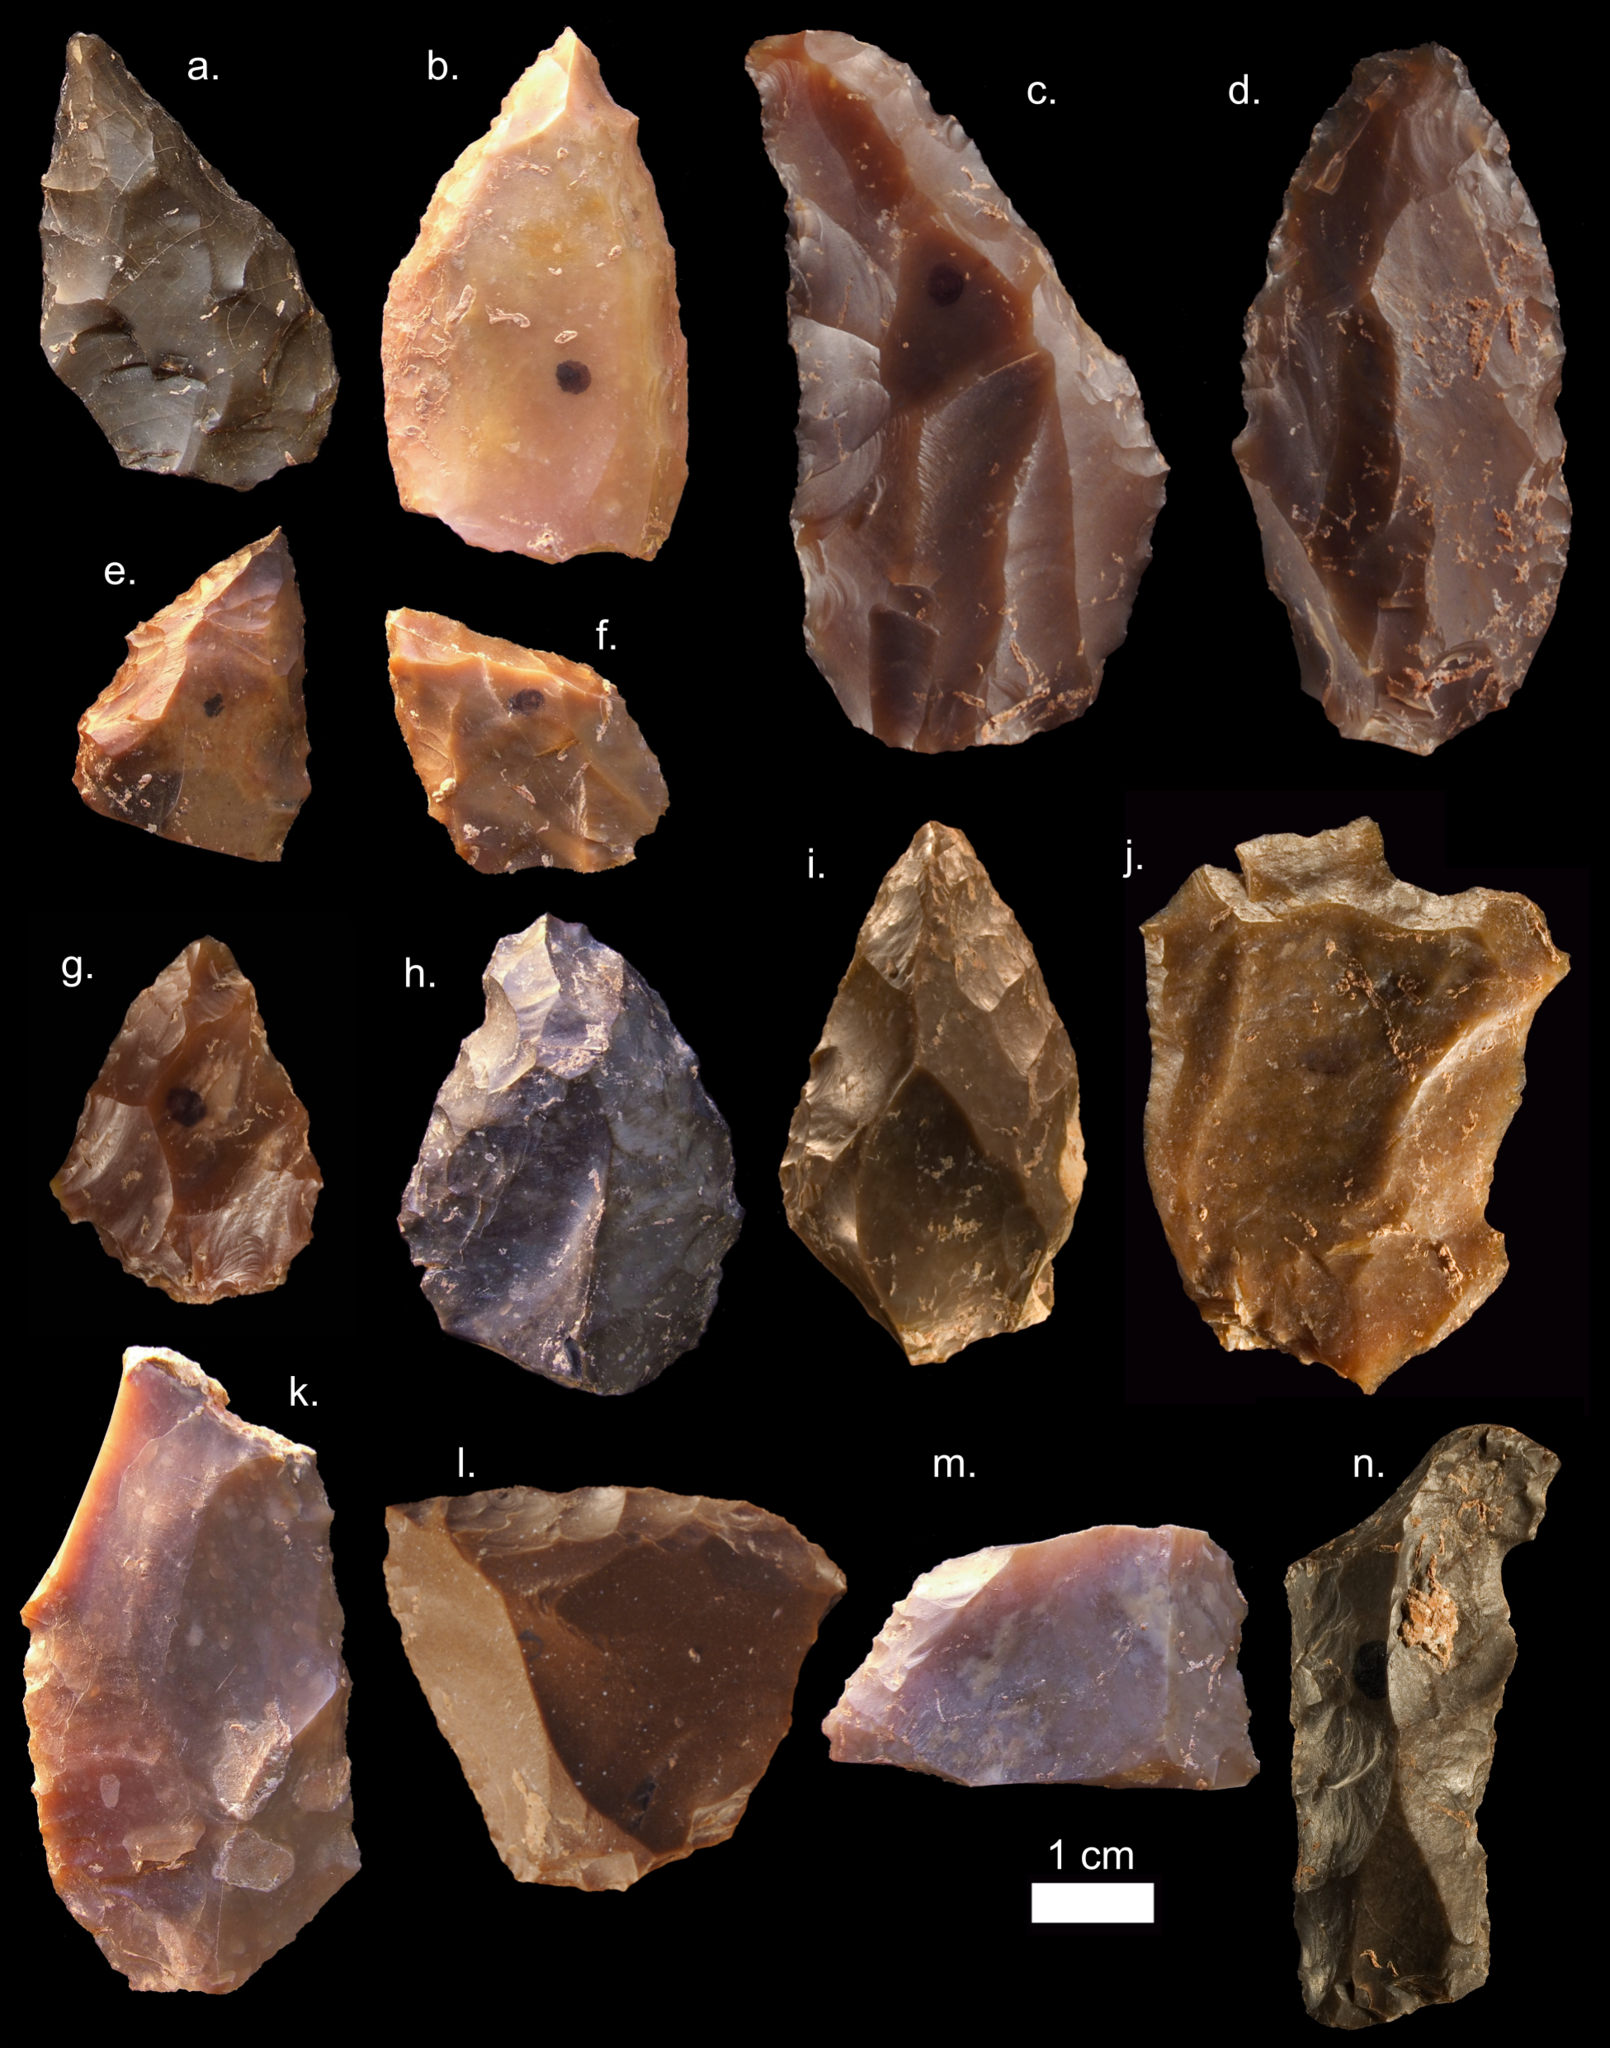 Some of the Middle Stone Age stone tools from Jebel Irhoud in Morocco. Pointed forms (a-i) are common, as are the Levallois prepared core flakes (j-k).